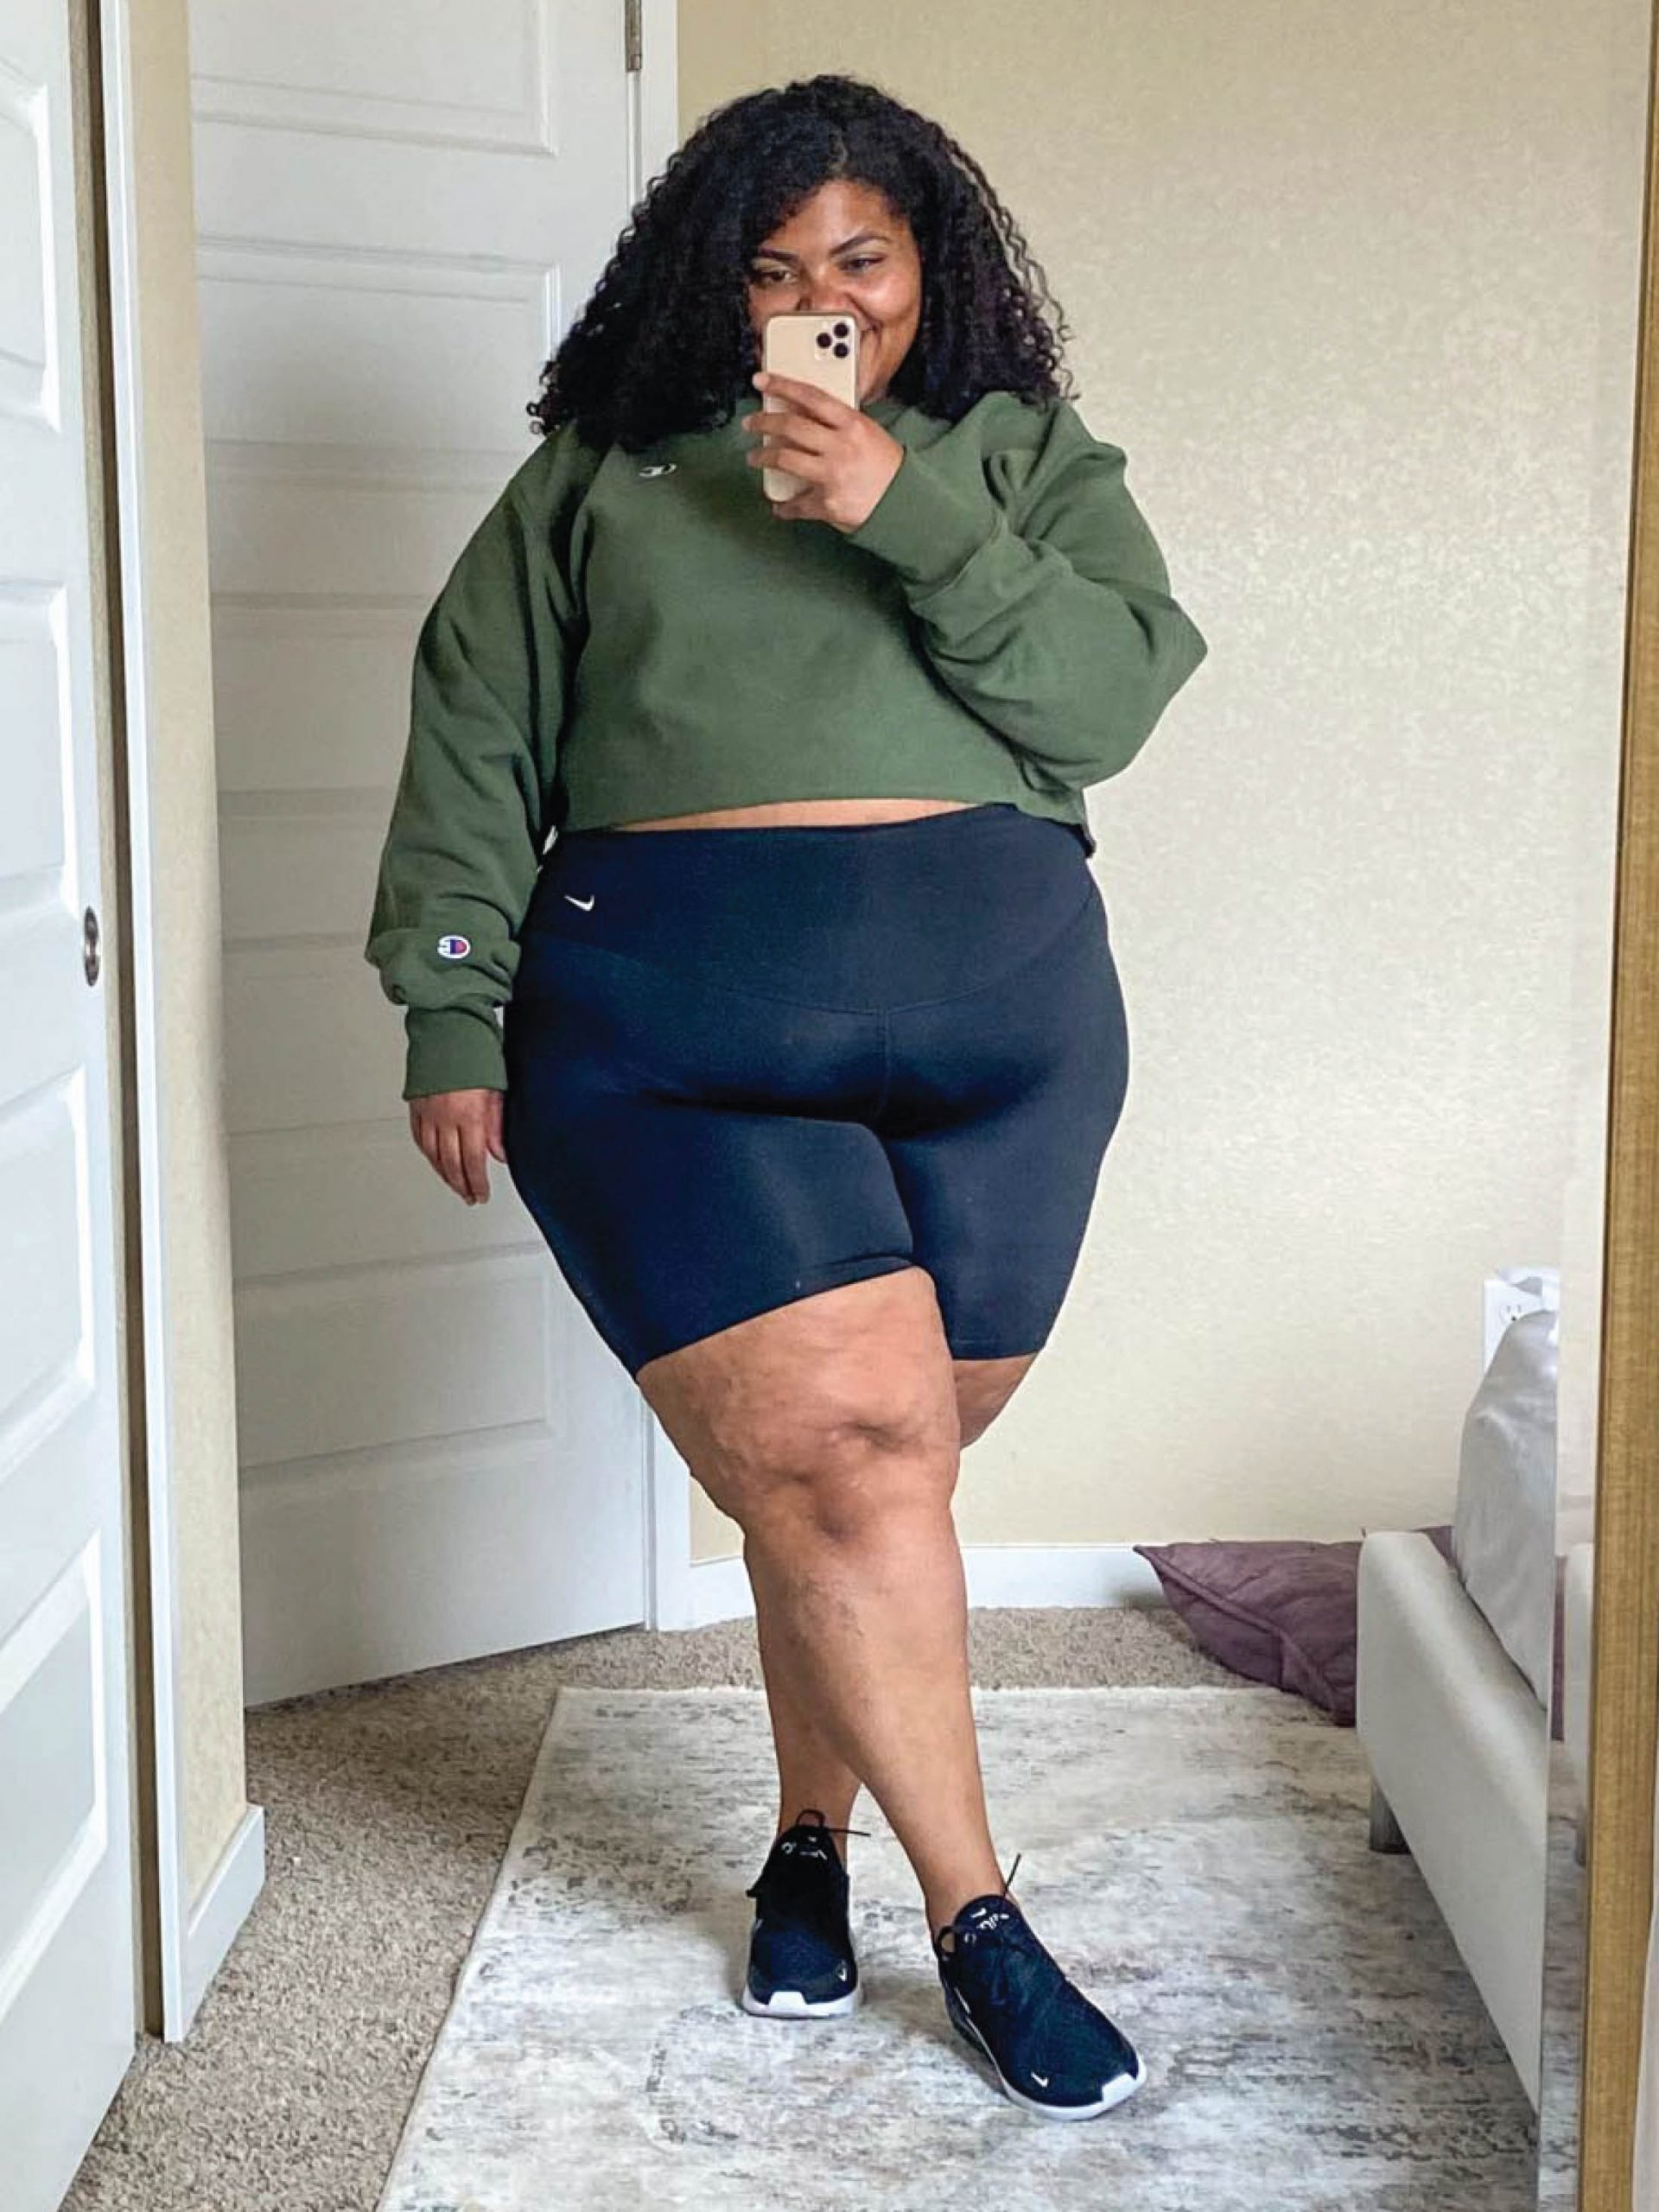 The Nordstrom Anniversary Sale is killin' the Netflix & Chill vibes. Our plus-size fashion edit has all the Nike, Free People & Zella we need now.